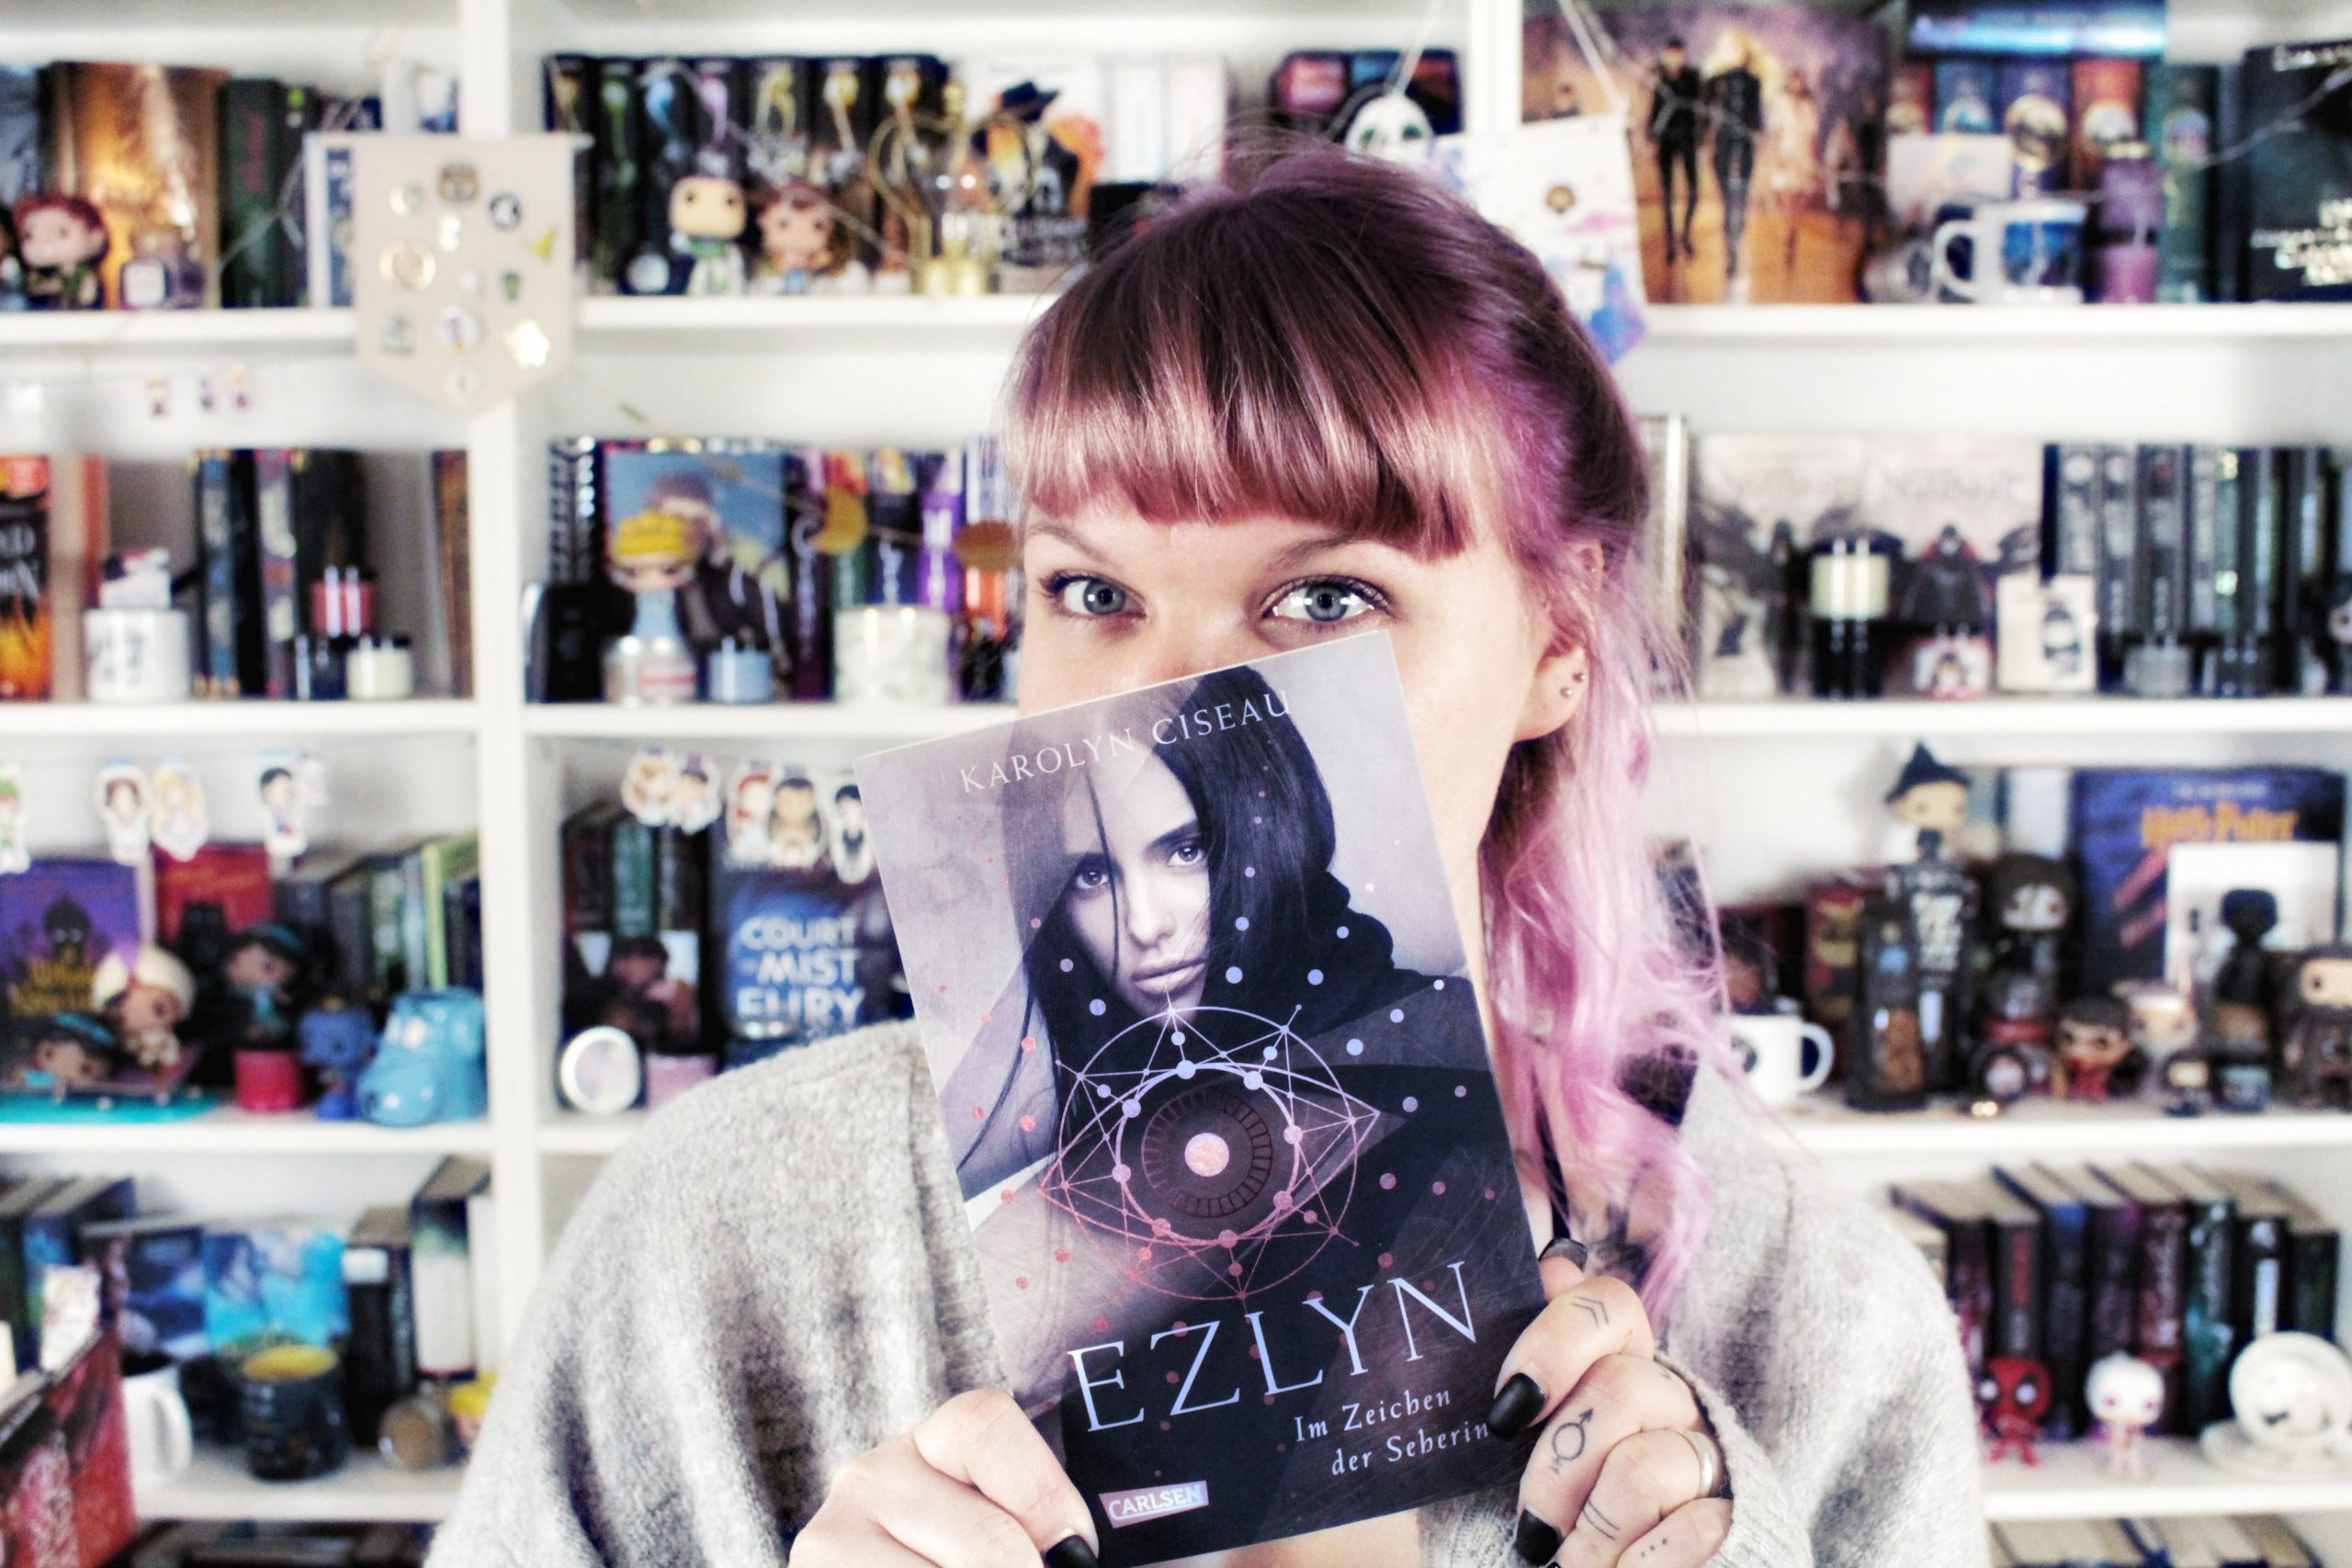 Rezension | Ezlyn von Karolyn Ciseau